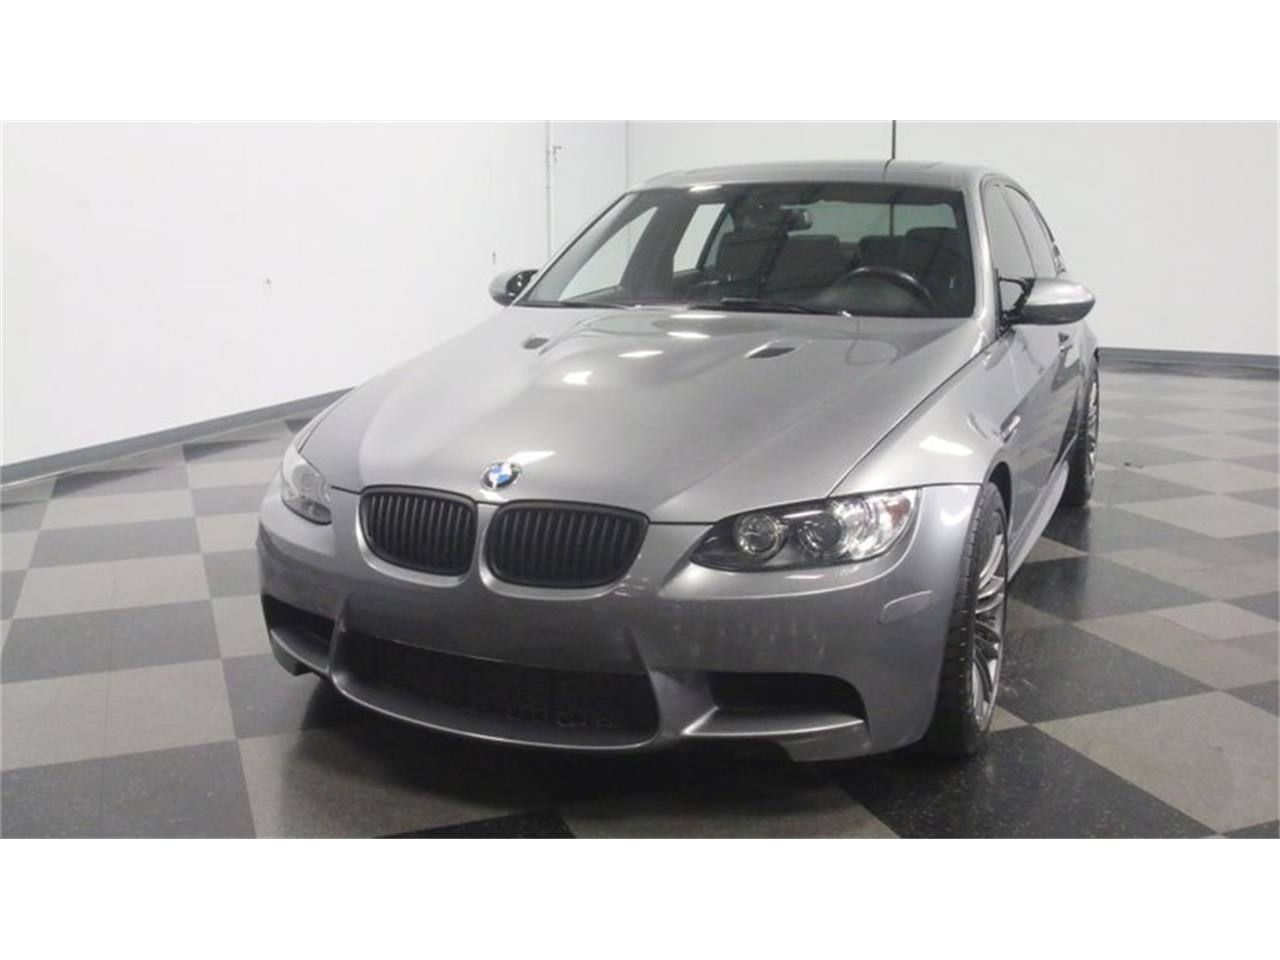 2010 BMW M3 for sale in Lithia Springs, GA – photo 20